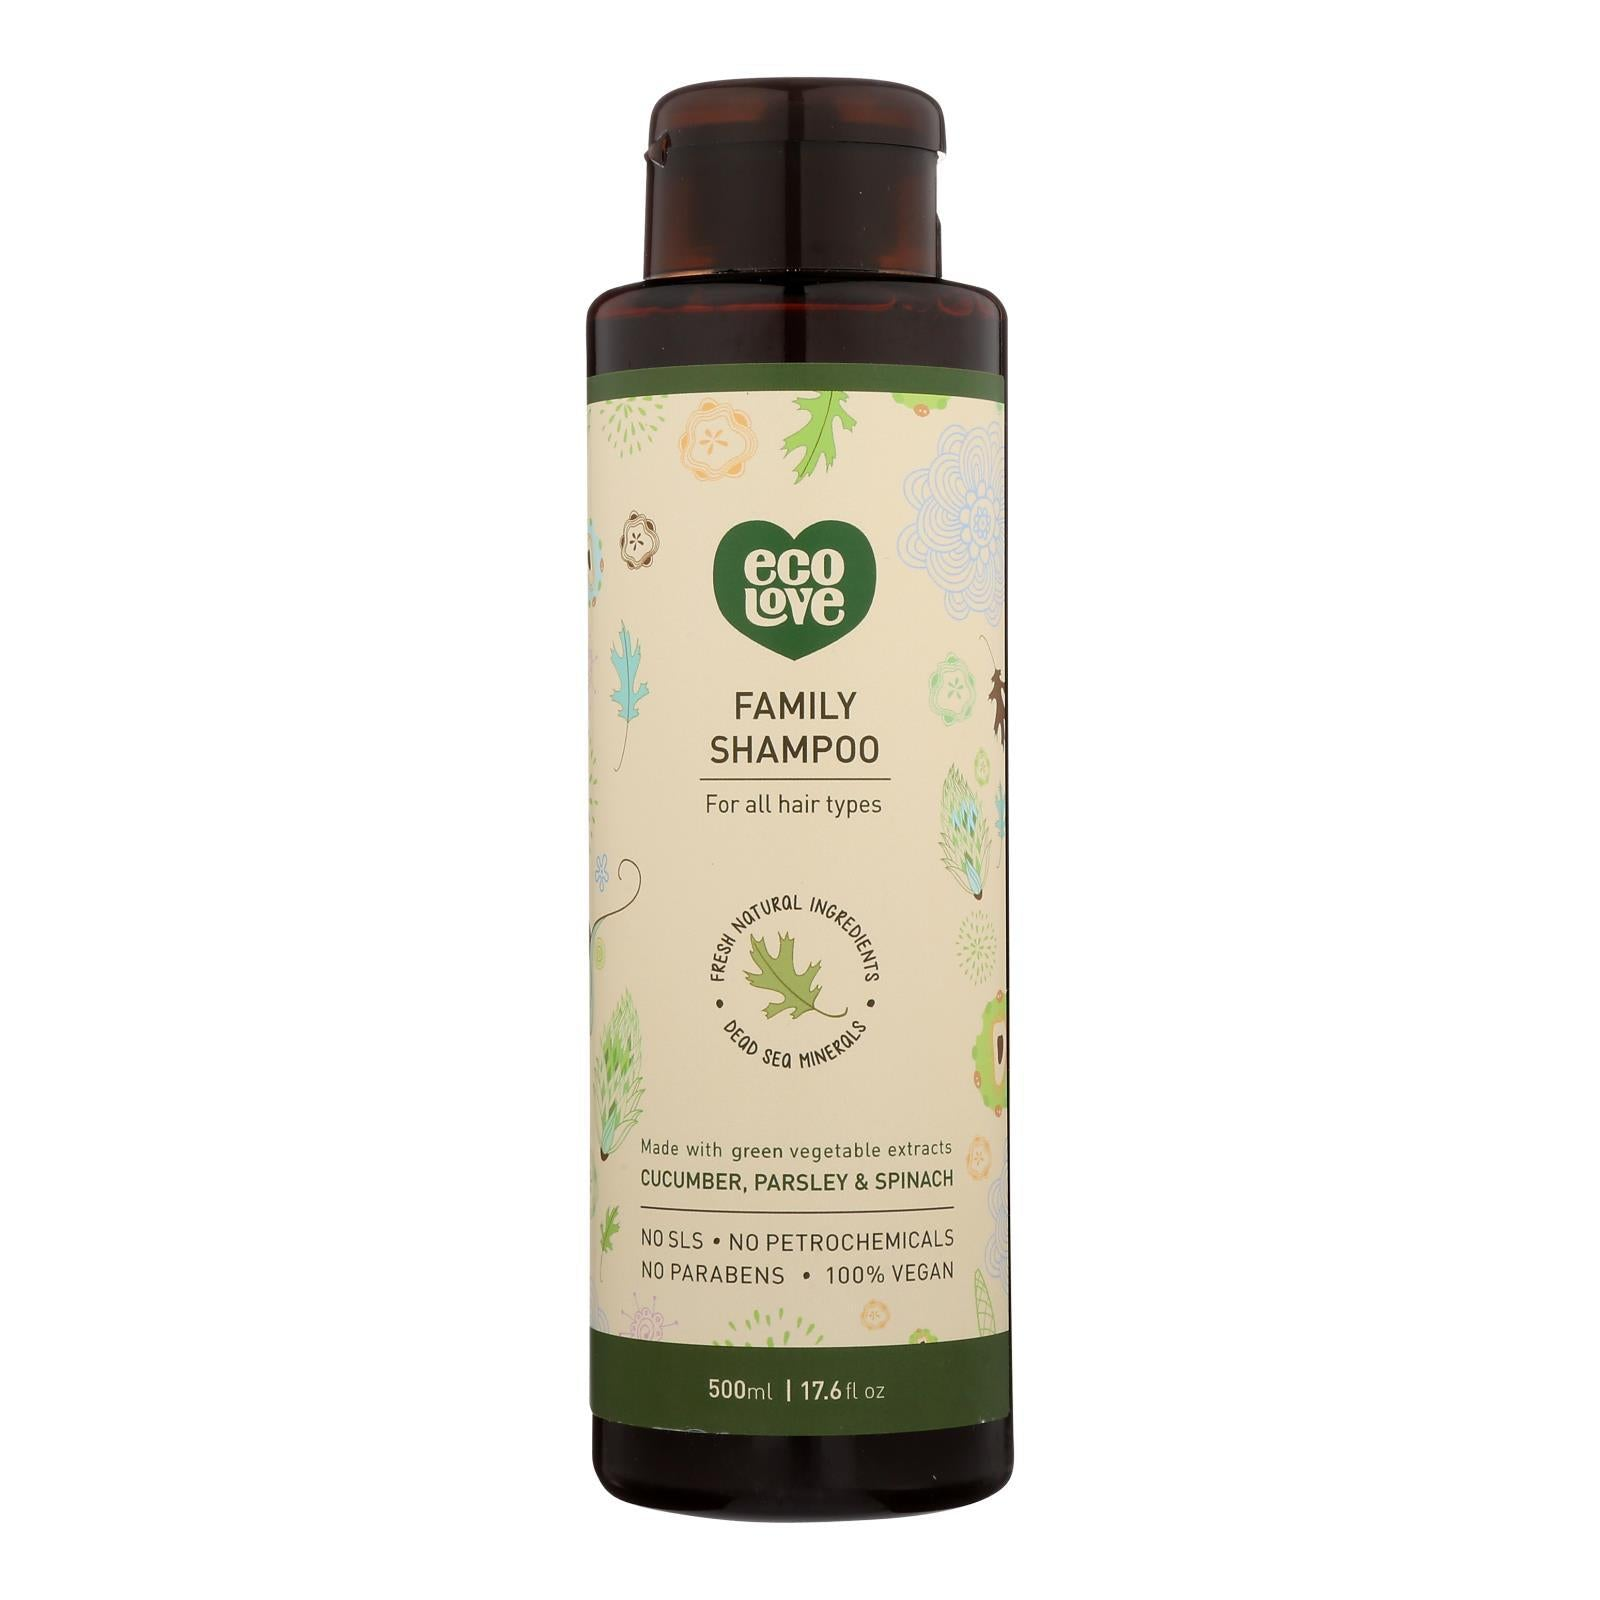 Ecolove Shampoo - Green Vegetables Family Shampoo For All Hair Types - Case Of 1 - 17.6 Fl Oz. - BeeGreen